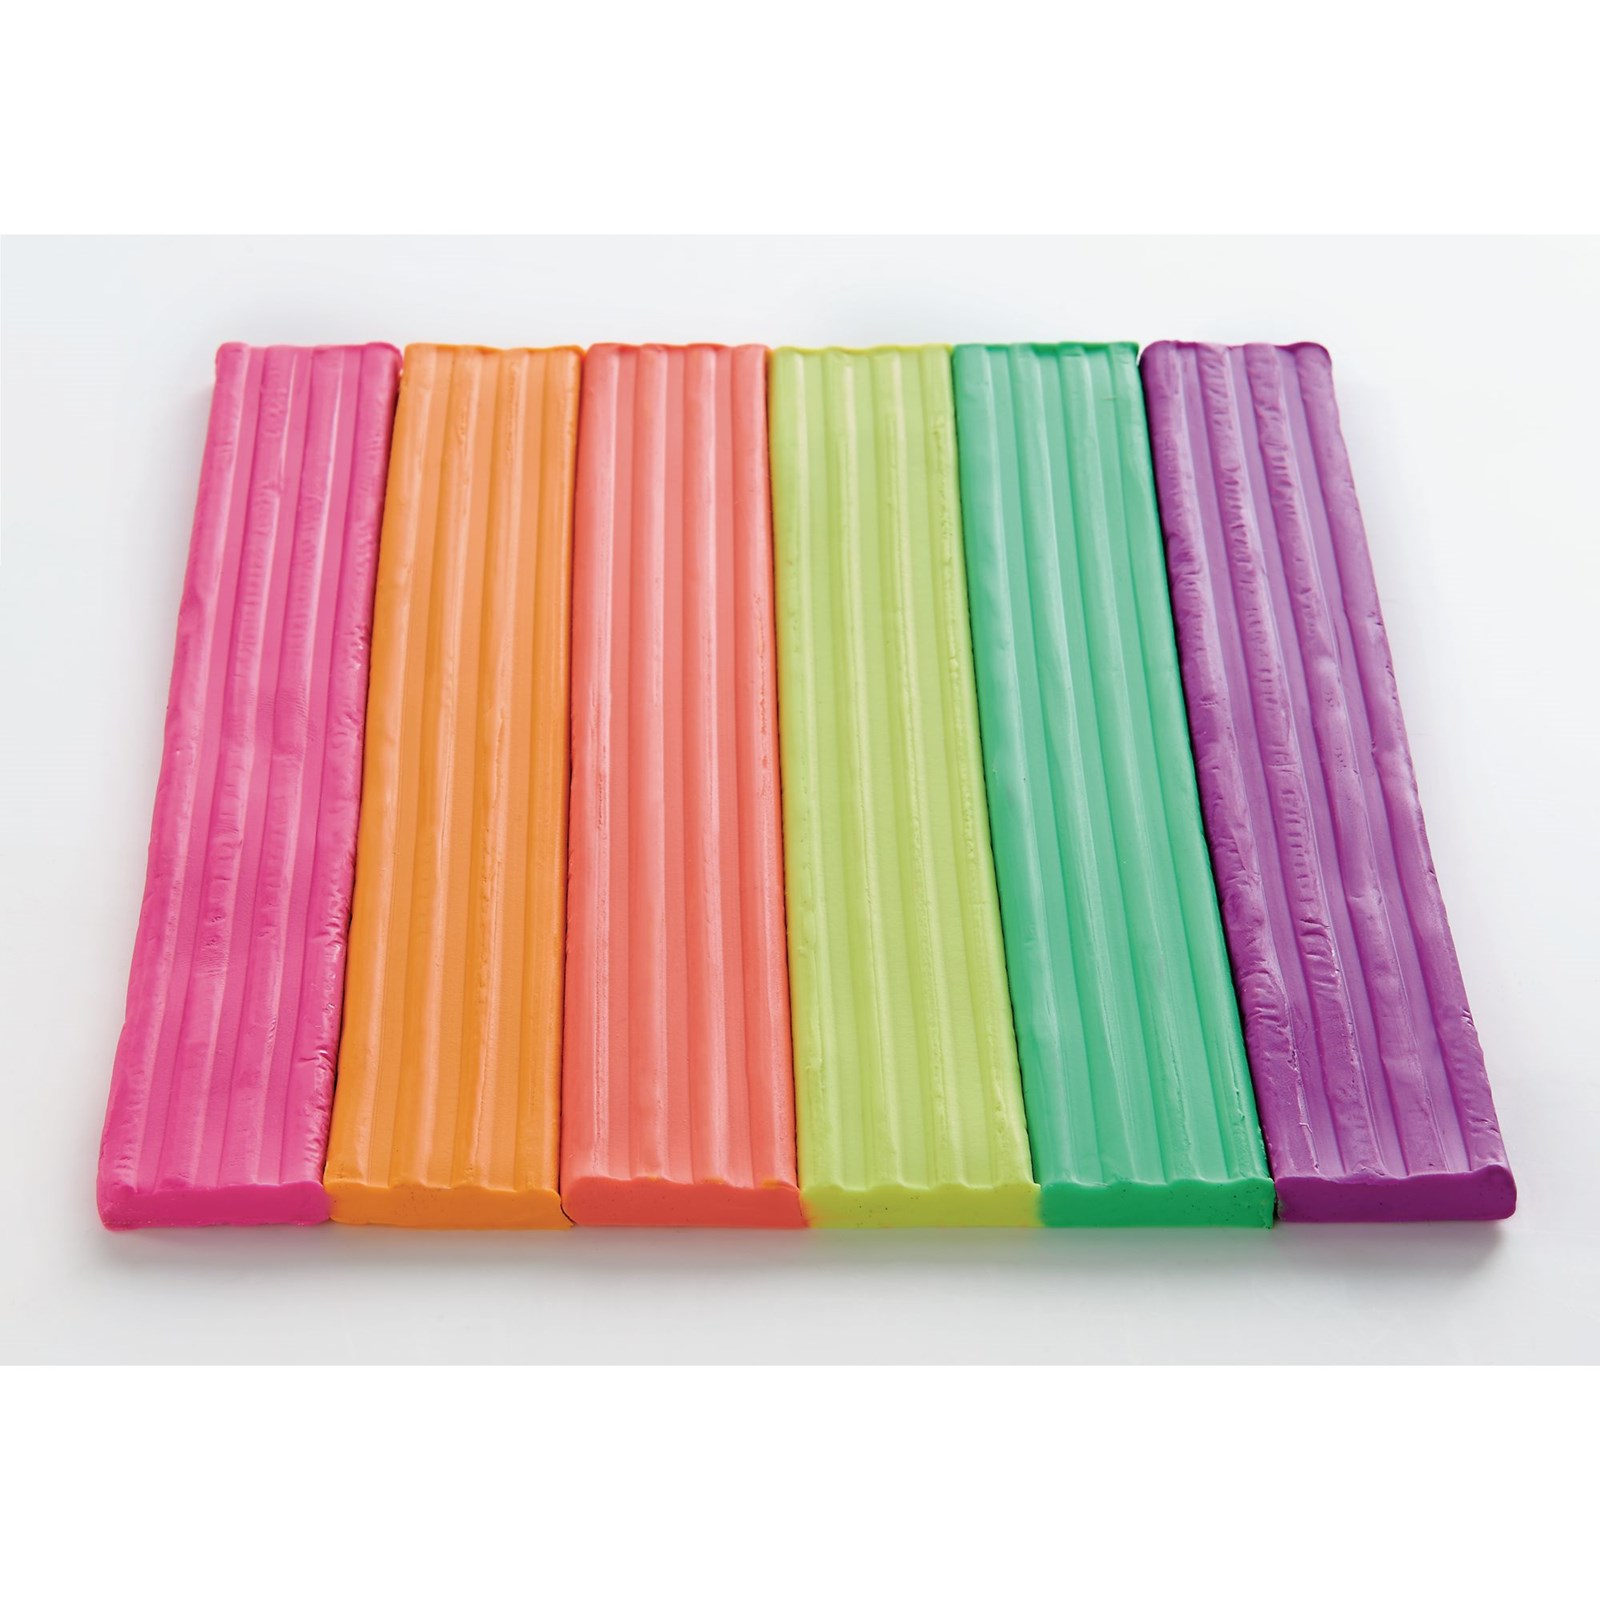 Neon Modelling Material 500g Pack of 6